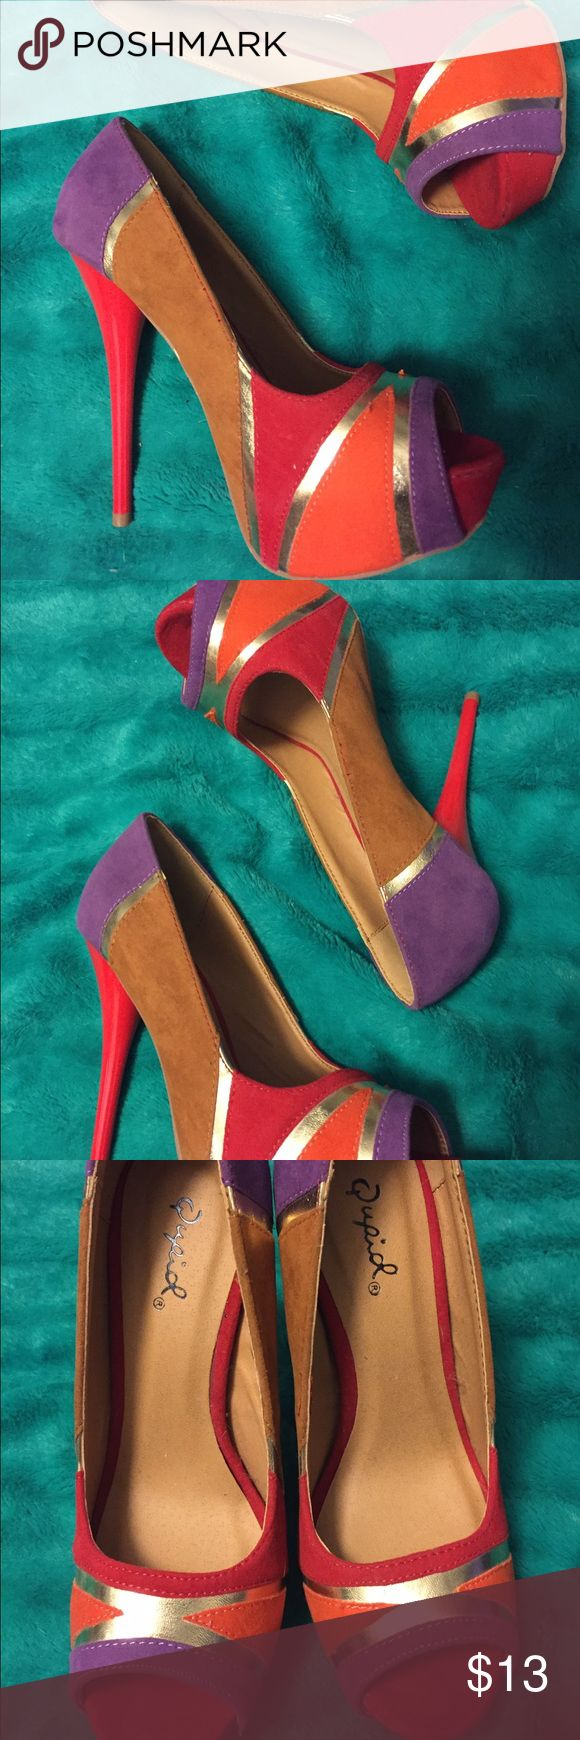 High heels Never been worn. Red, orange, purple, tan and gold Charlotte Russe Shoes Heels